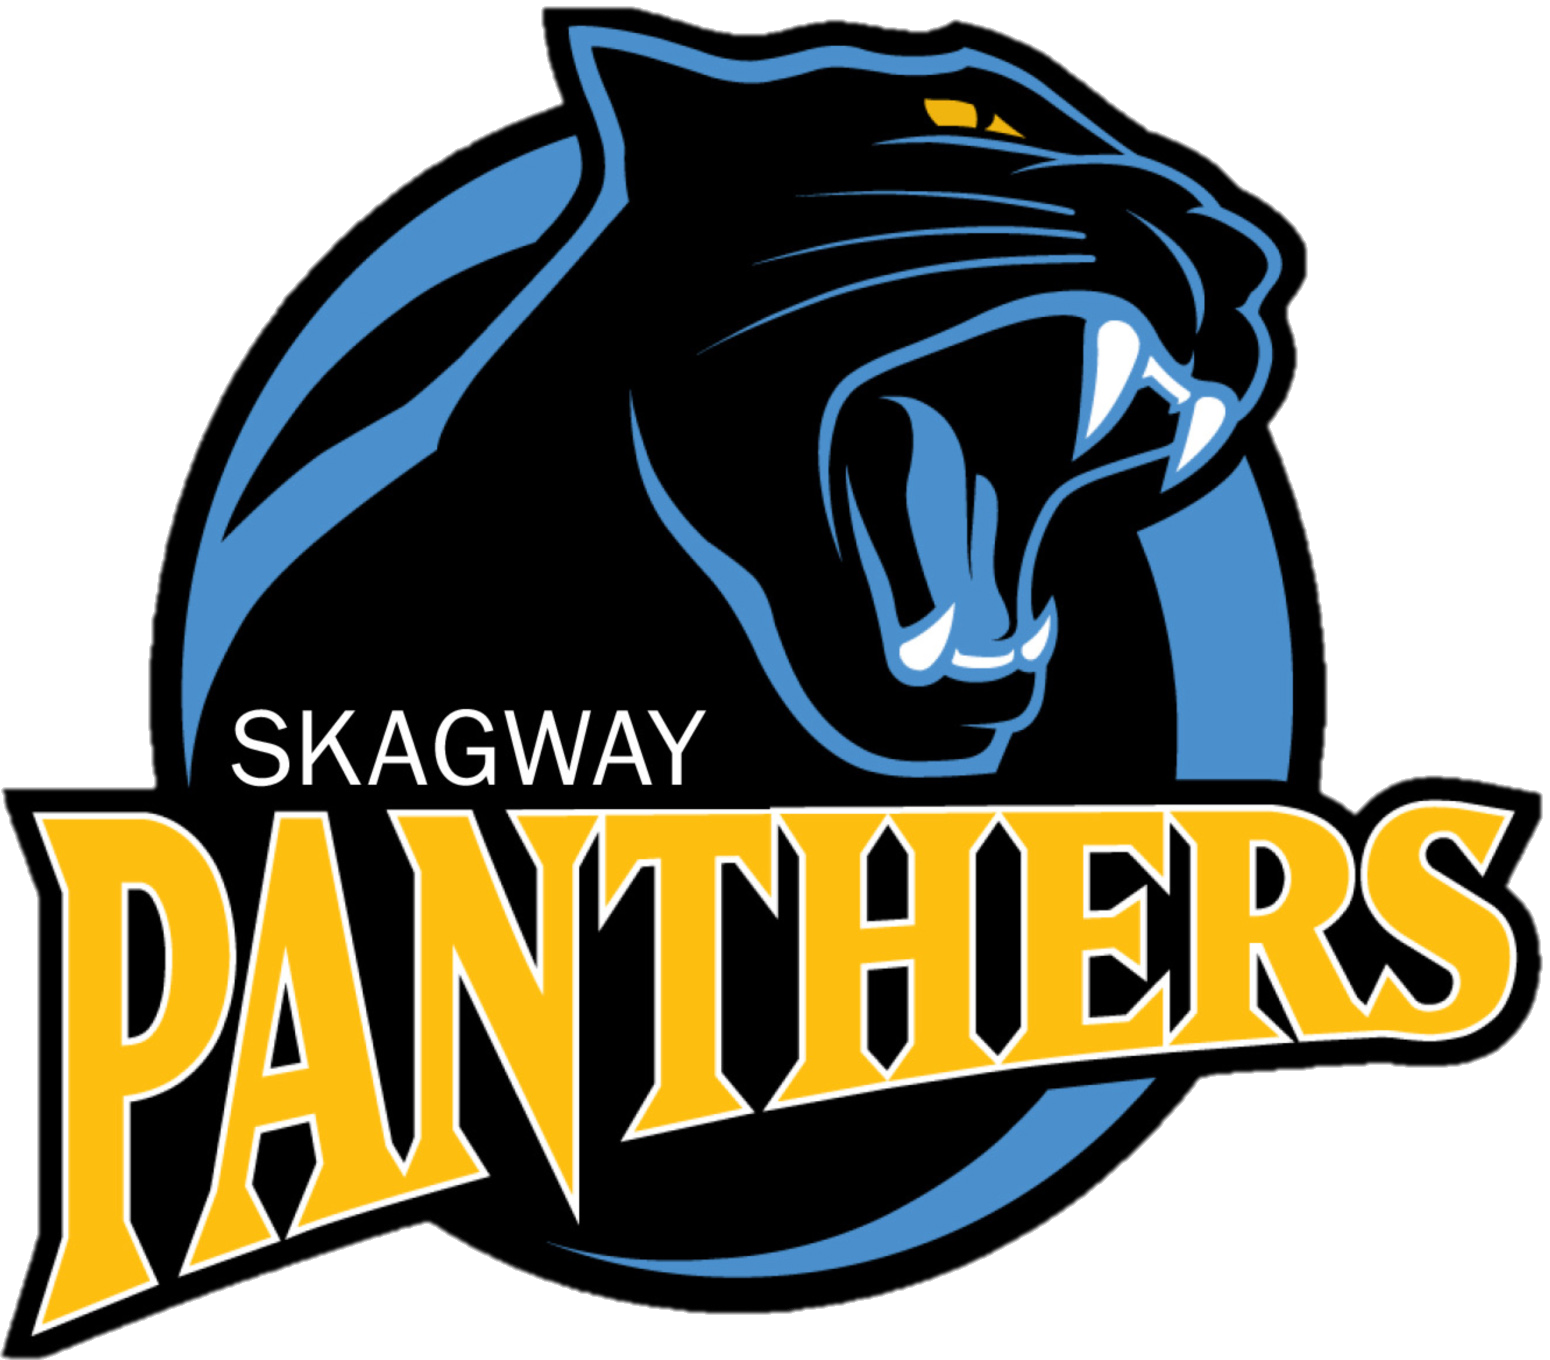 Panther clipart panther basketball. Home skagway school district